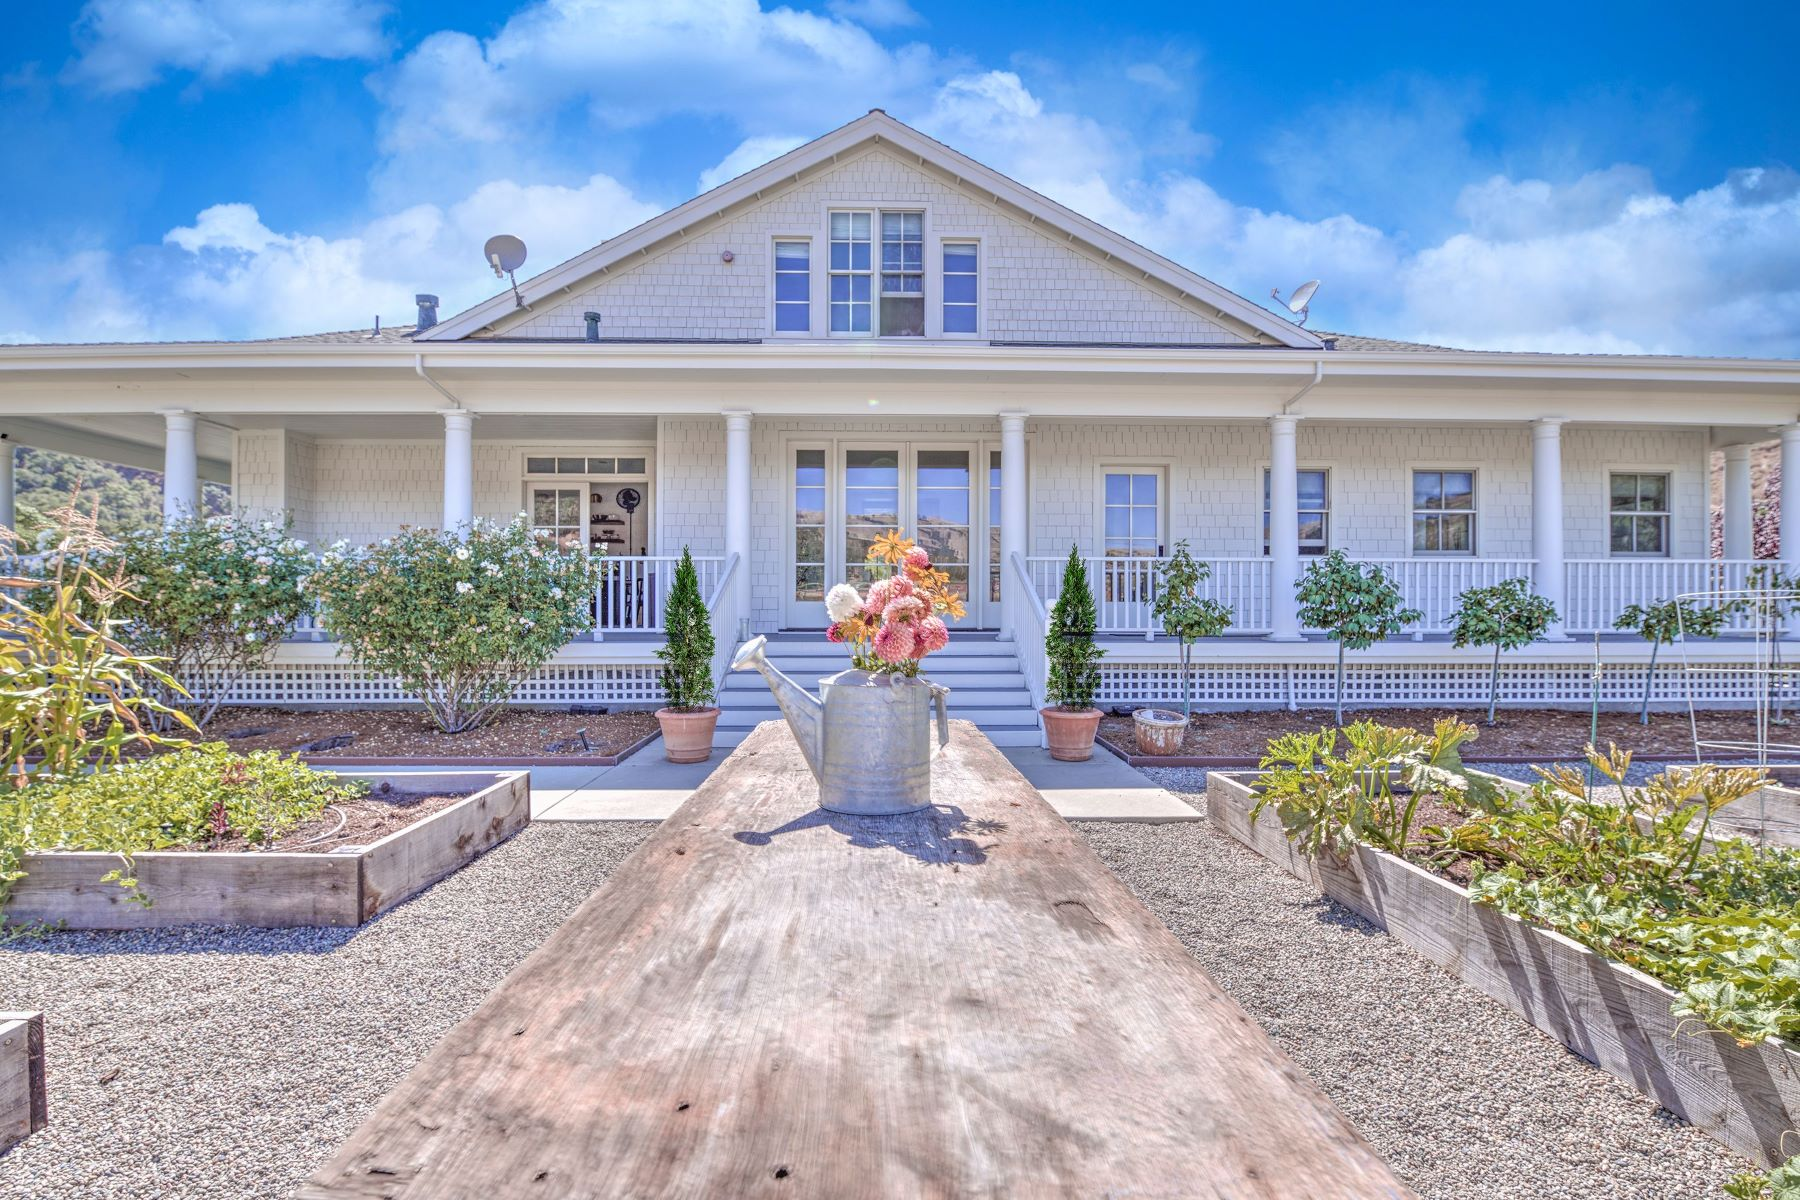 Vineyard Real Estate for Active at Pastures of Heaven Farmhouse 478 Corral De Tierra Road Salinas, California 93908 United States